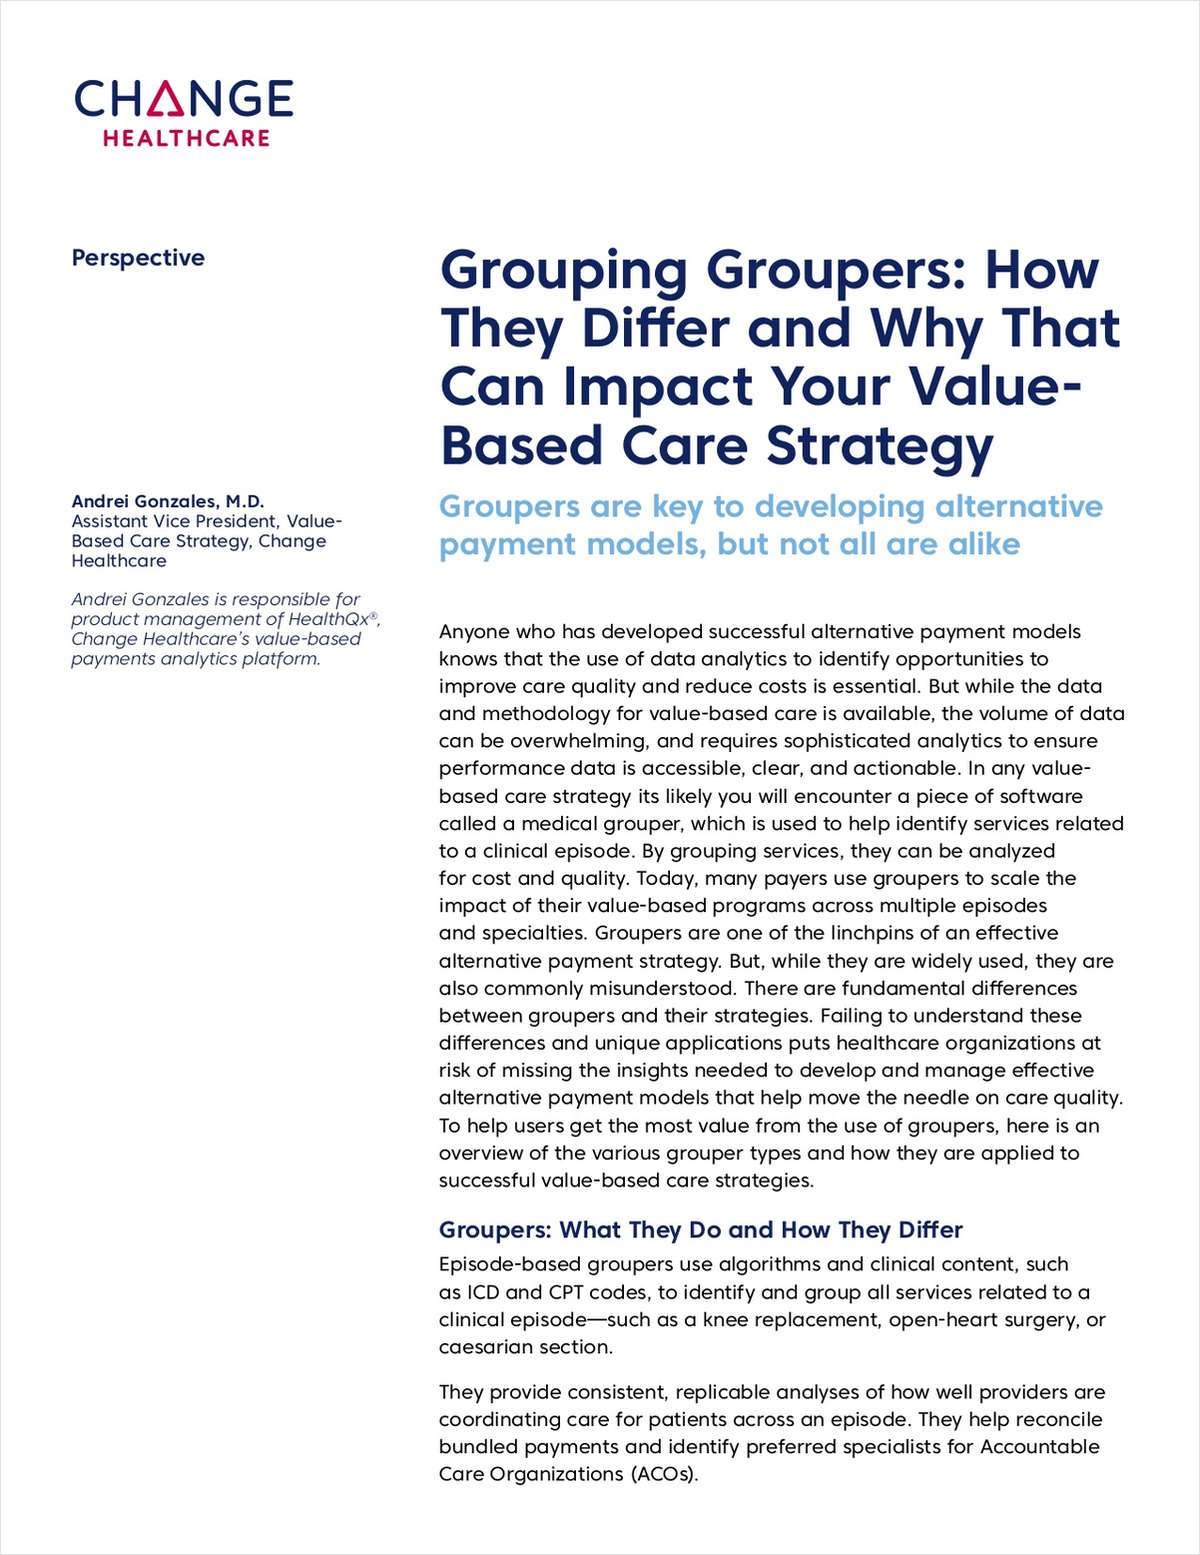 Groupers: How They Differ and Why That Can Impact Your VBC Strategy